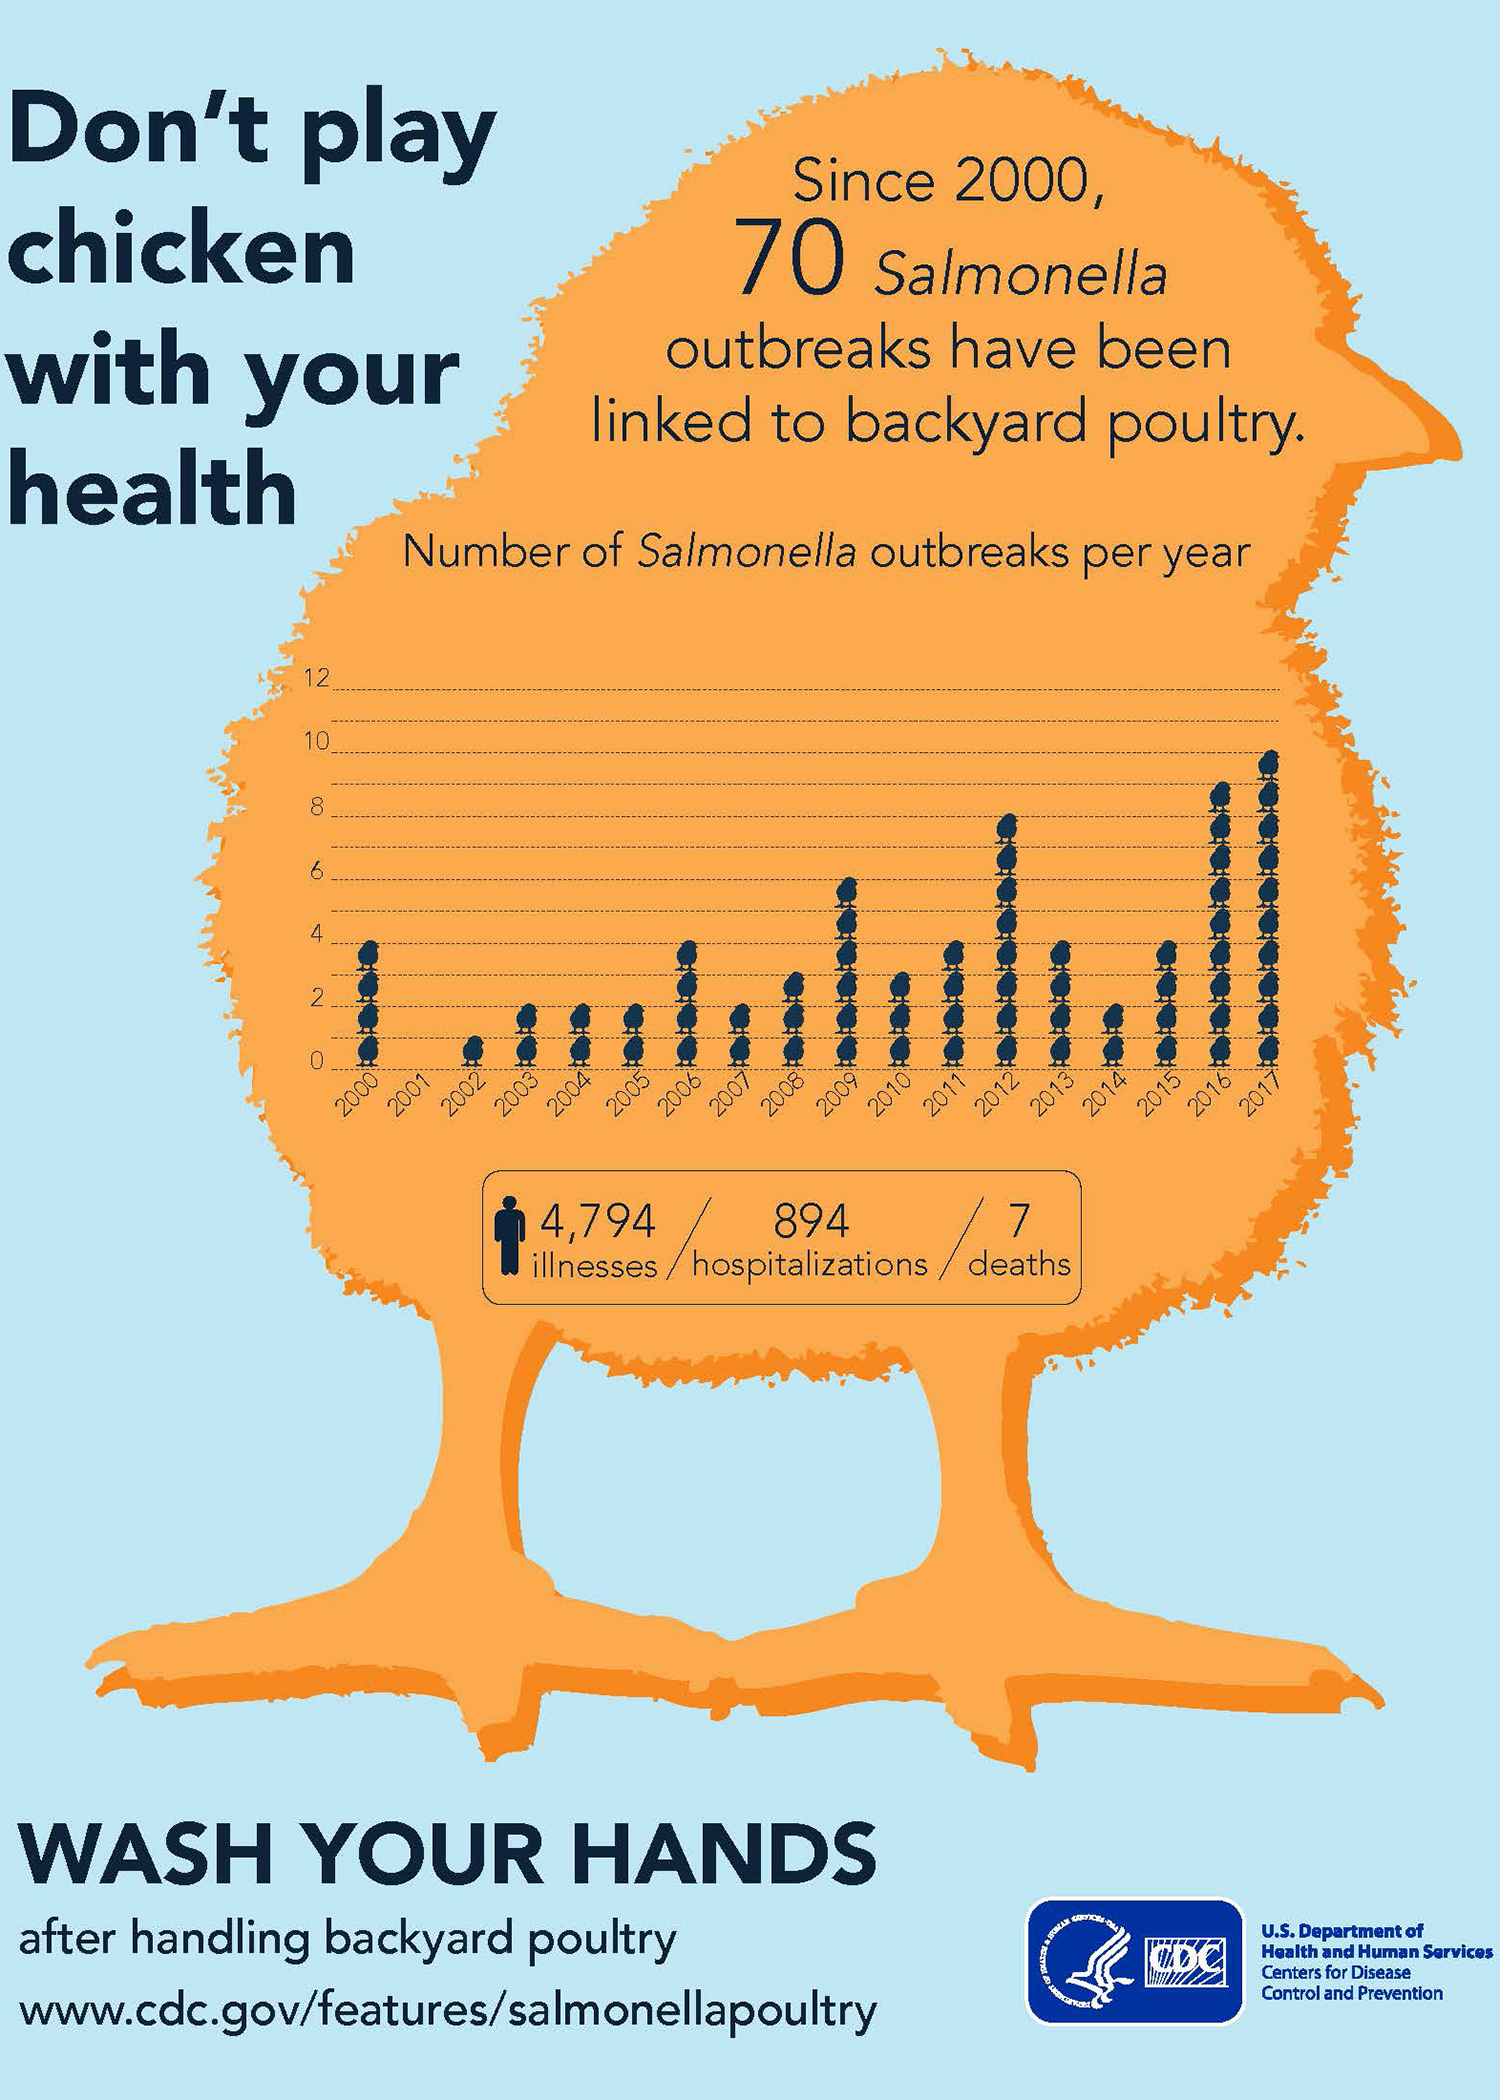 Diseases Of Poultry Mississippi State University Extension Service External Anatomy Kept On Small Or Backyard Flocks Chicken An Illustration Depicts A Large Yellow Chick With Graph Showing The Number Salmonella Outbreaks